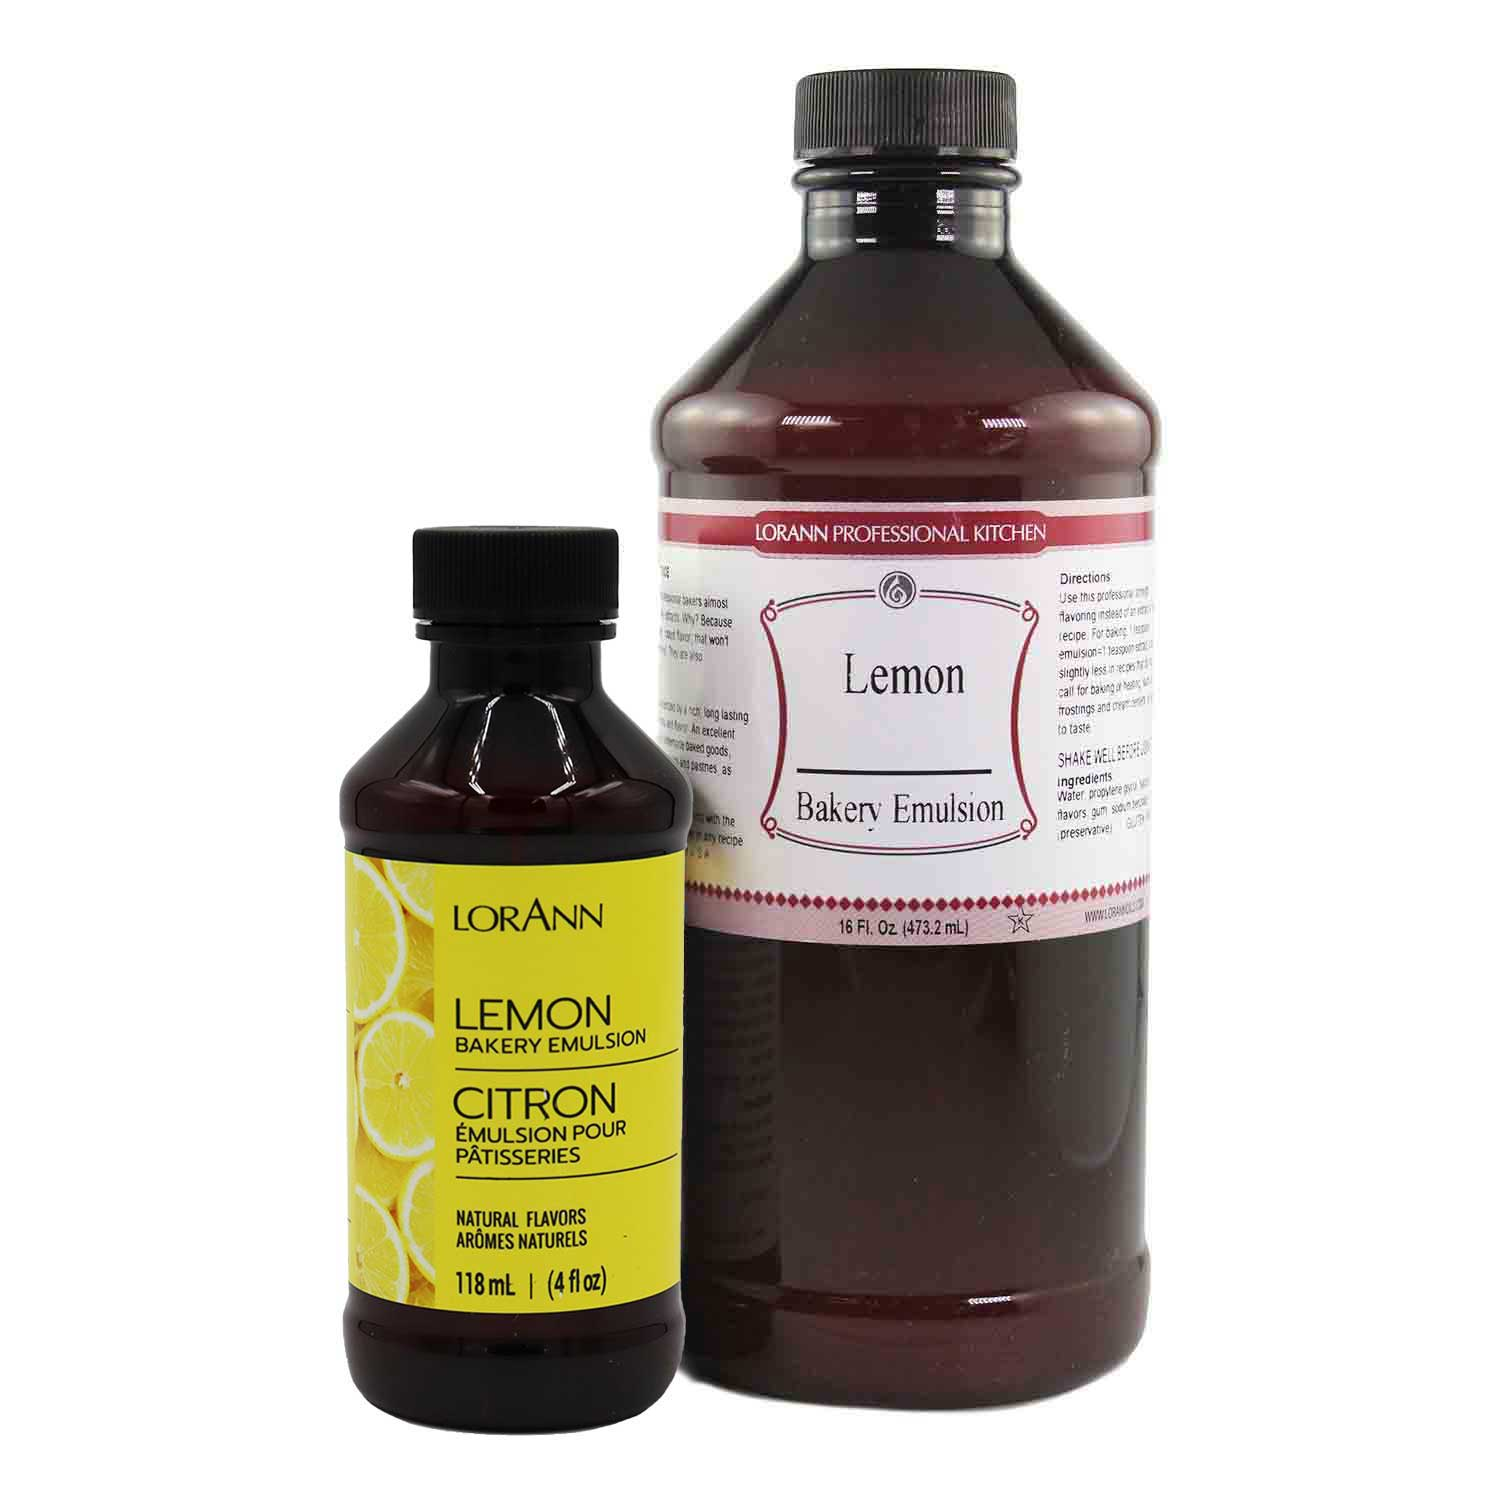 Lemon Bakery Emulsion